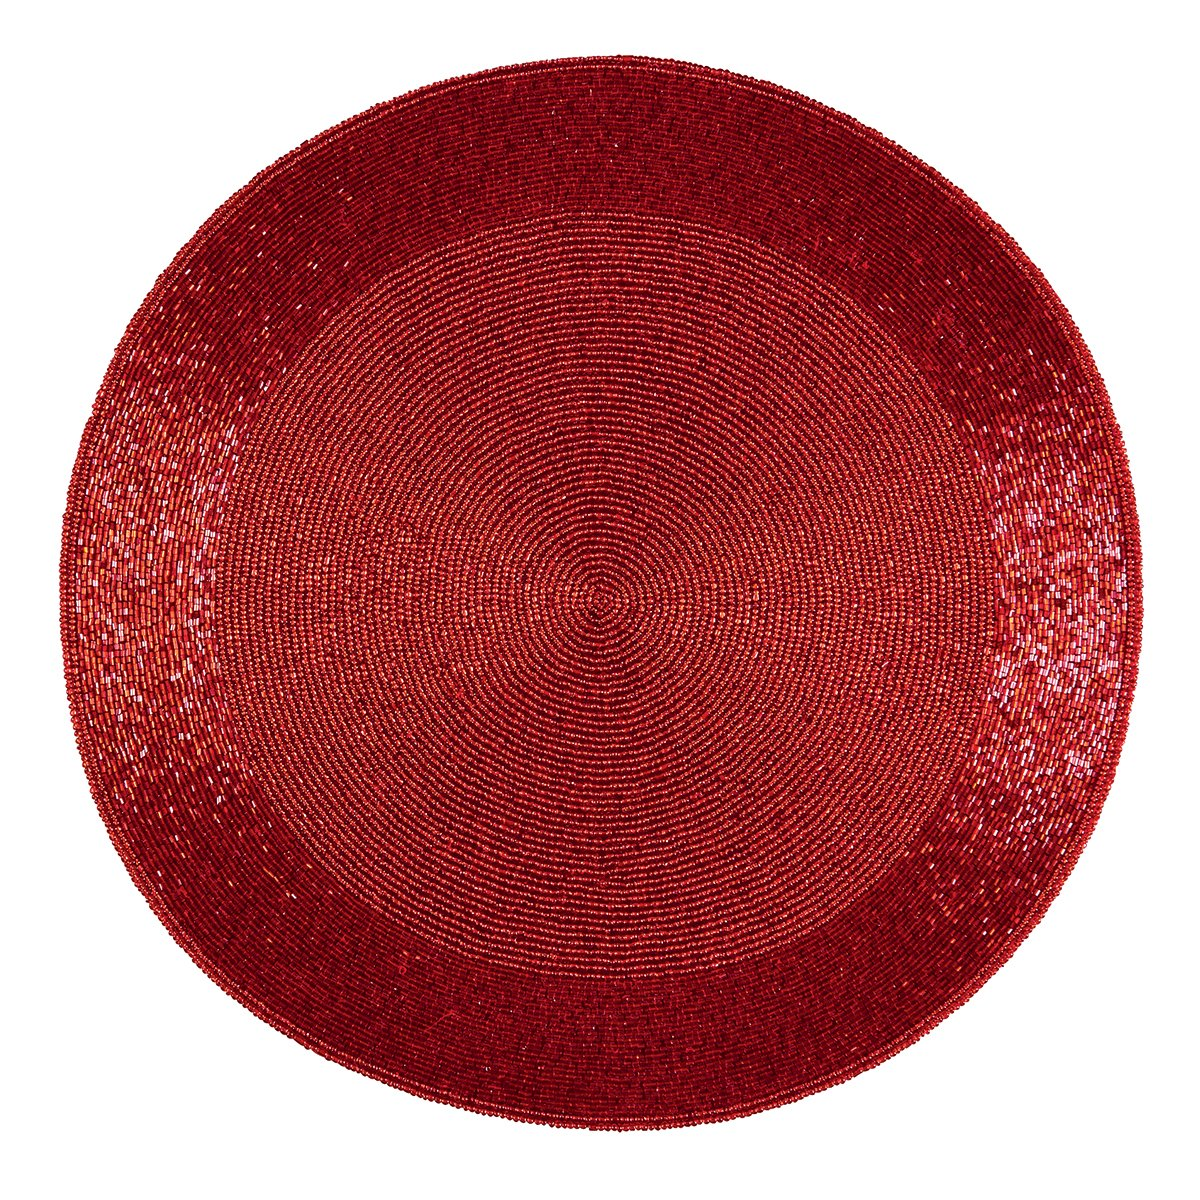 Christmas Tablescape Décor - Red round hand beaded placemats - Set of 4 by C&F